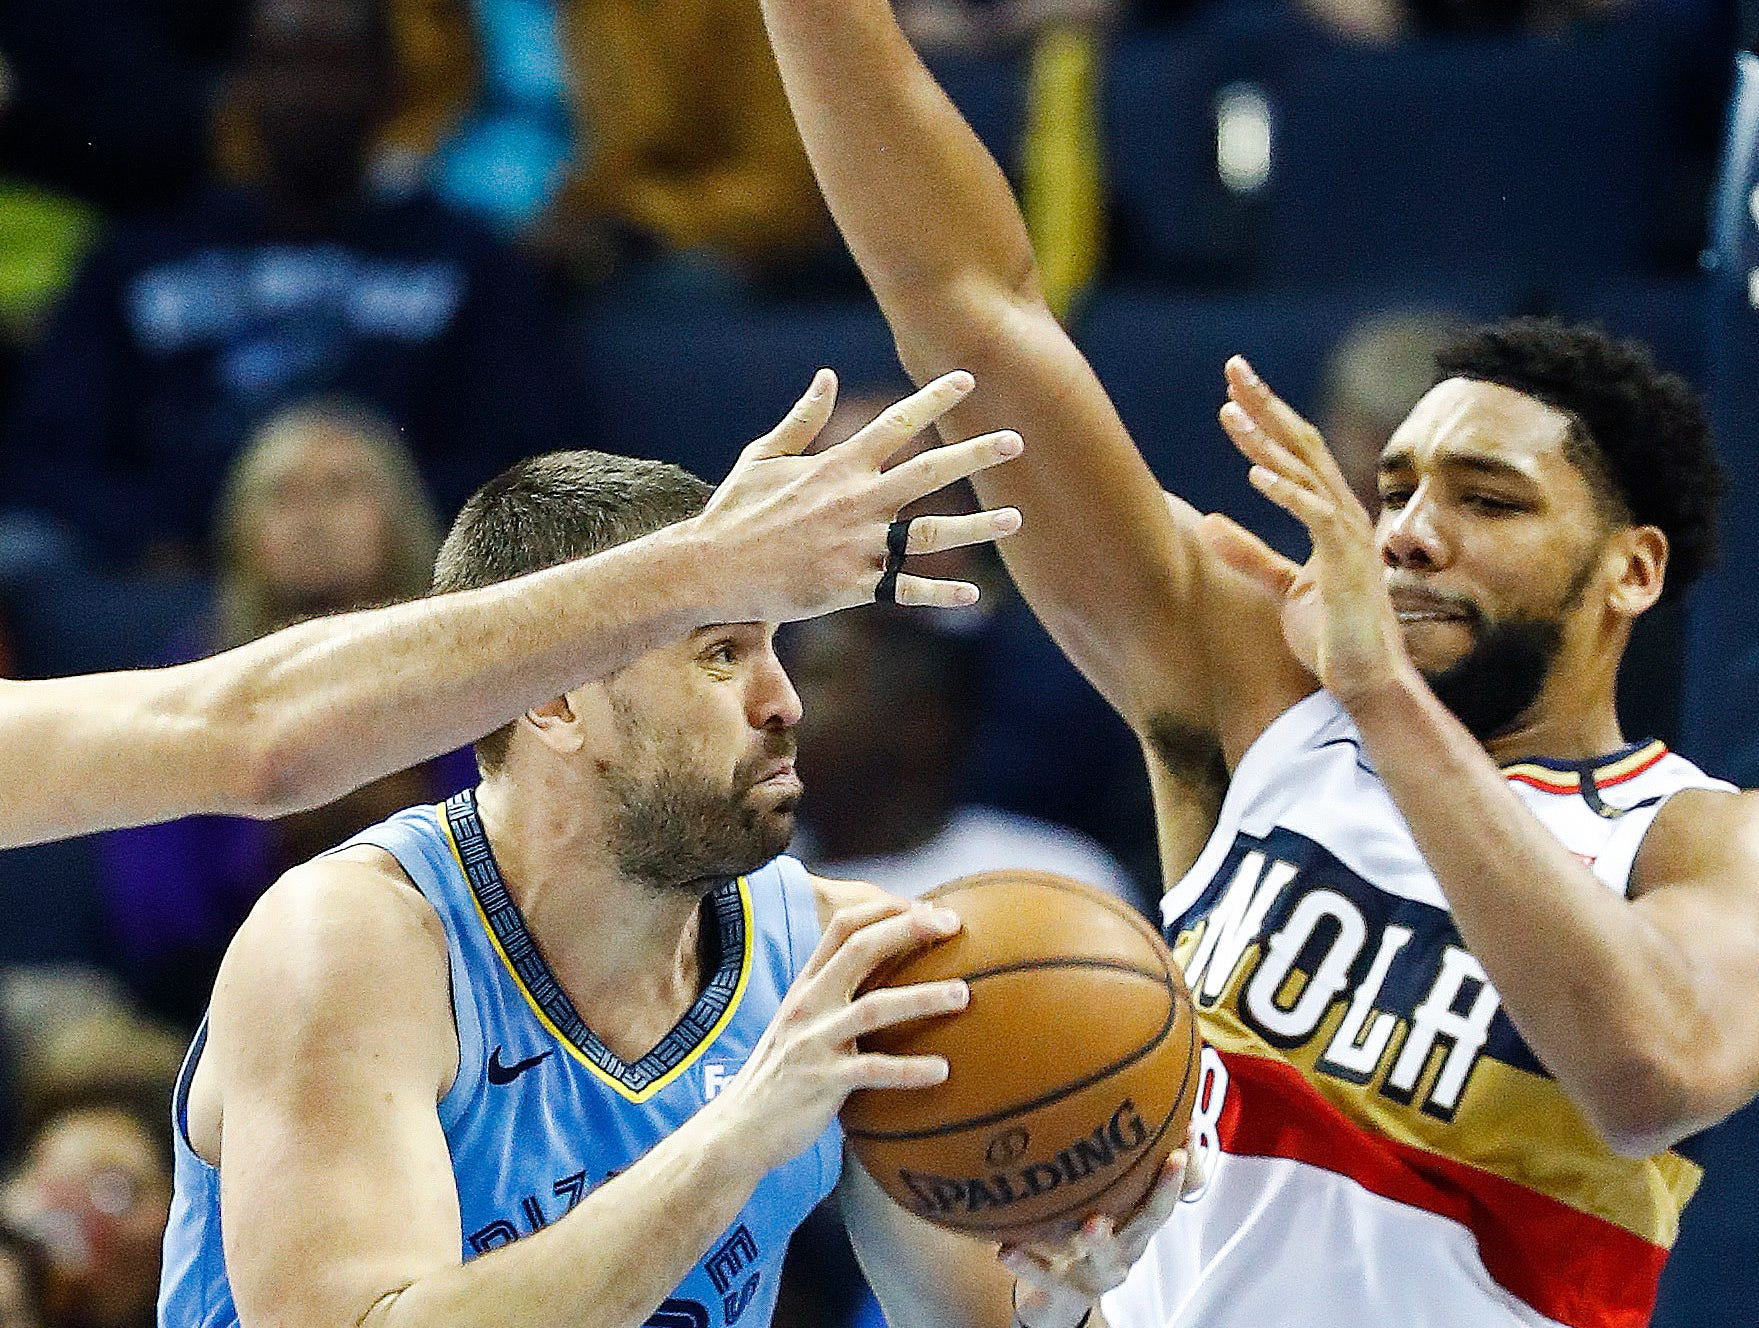 Memphis Grizzlies center Marc Gasol (left) drives the lane against New Orleans Pelicans defender Jahlil Okafor (right) during action at the FedExForum in Memphis, Tenn., Monday, January 21, 2019.